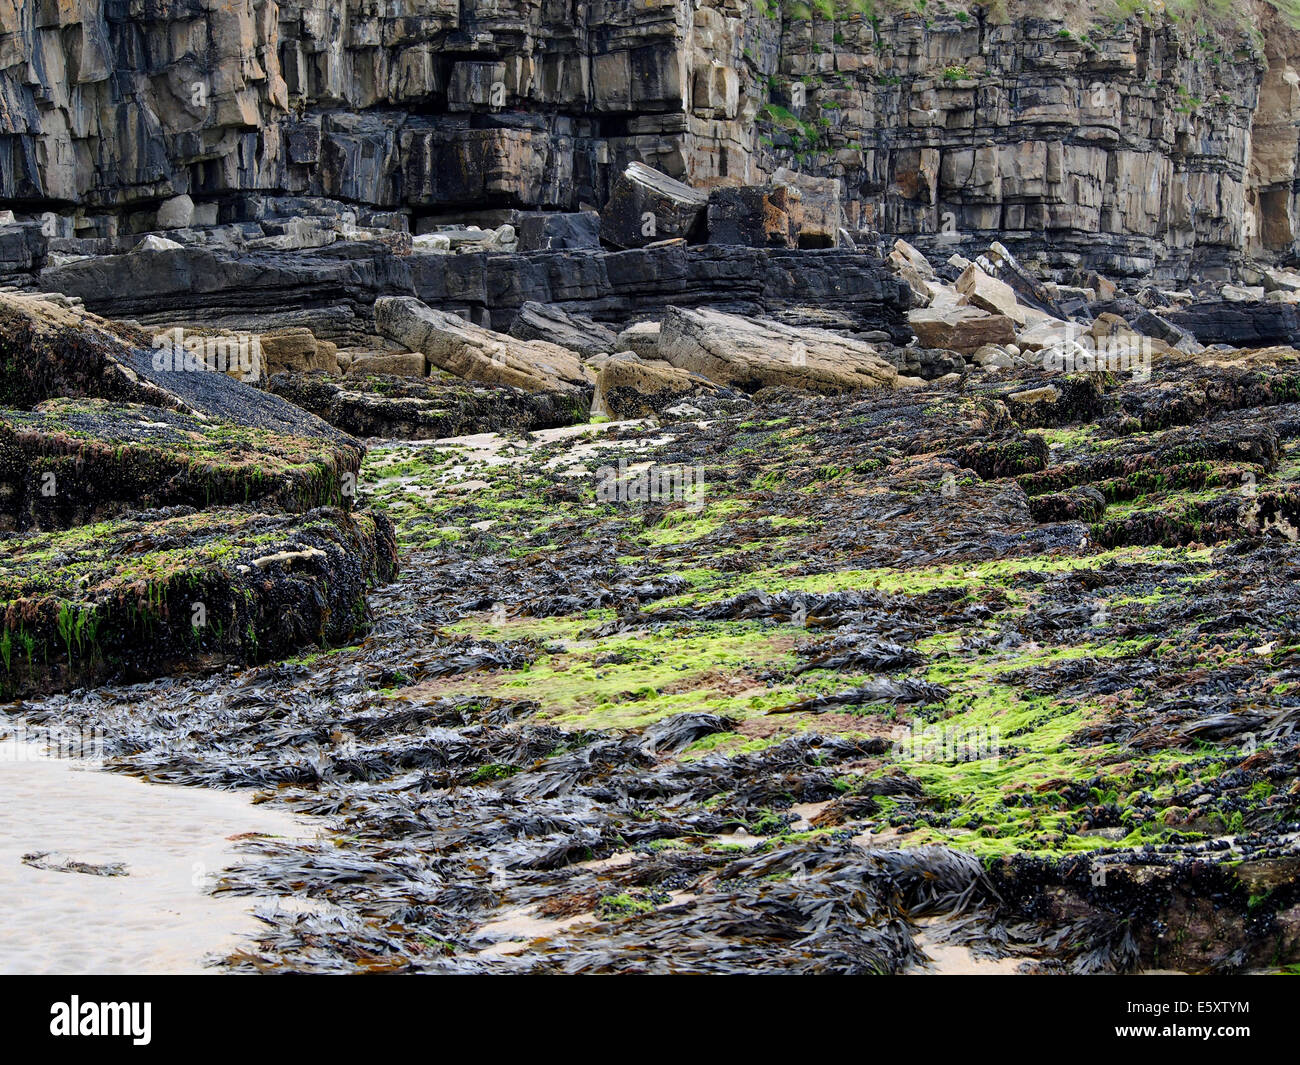 Cliff with horizontally bedded strata and a wave cut platform at the base near Mullaghmore, County Sligo, Ireland - Stock Image